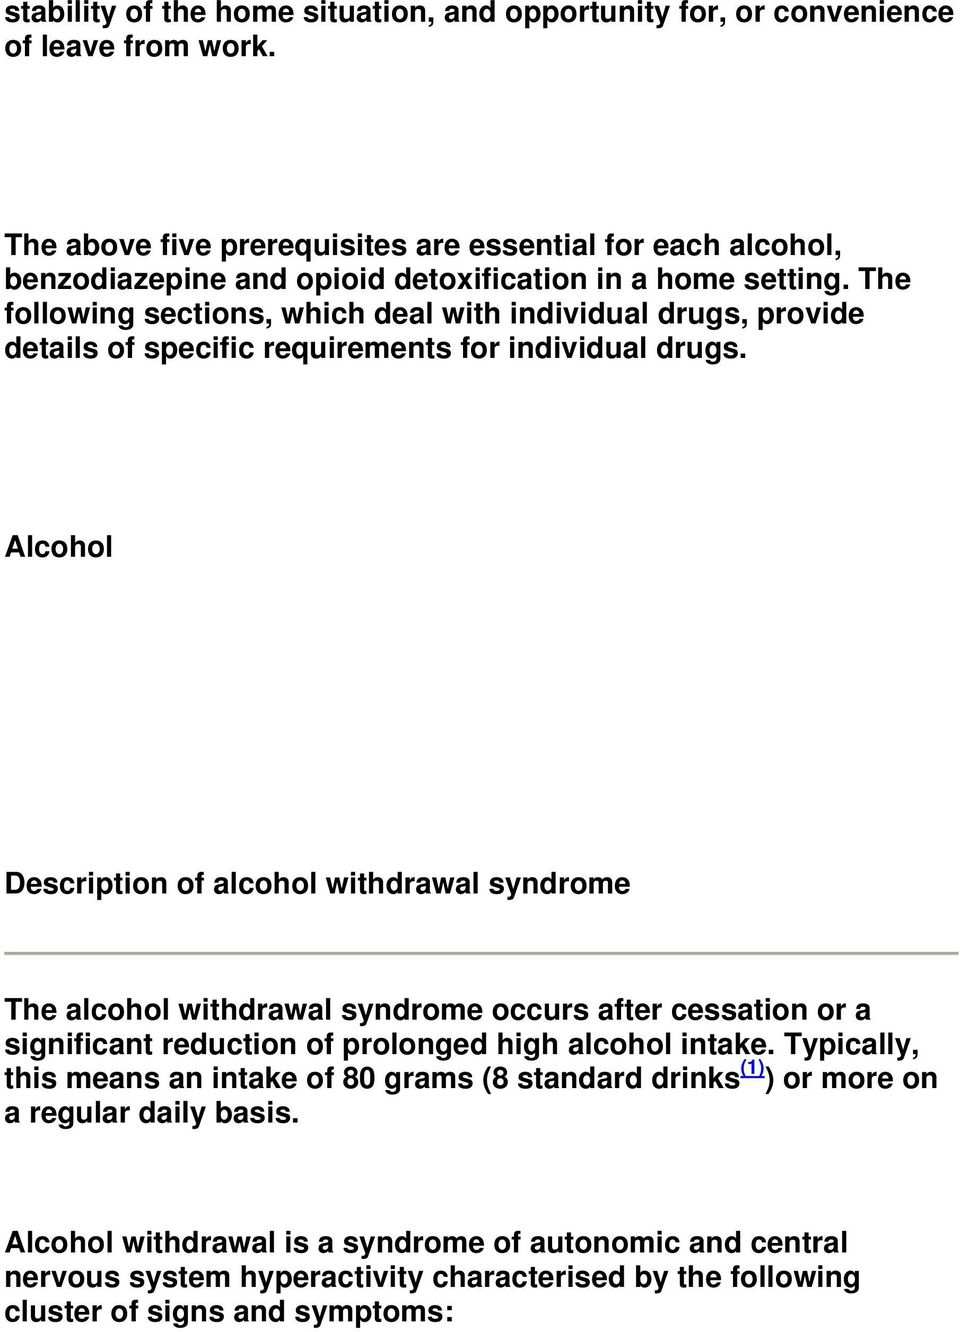 The following sections, which deal with individual drugs, provide details of specific requirements for individual drugs.